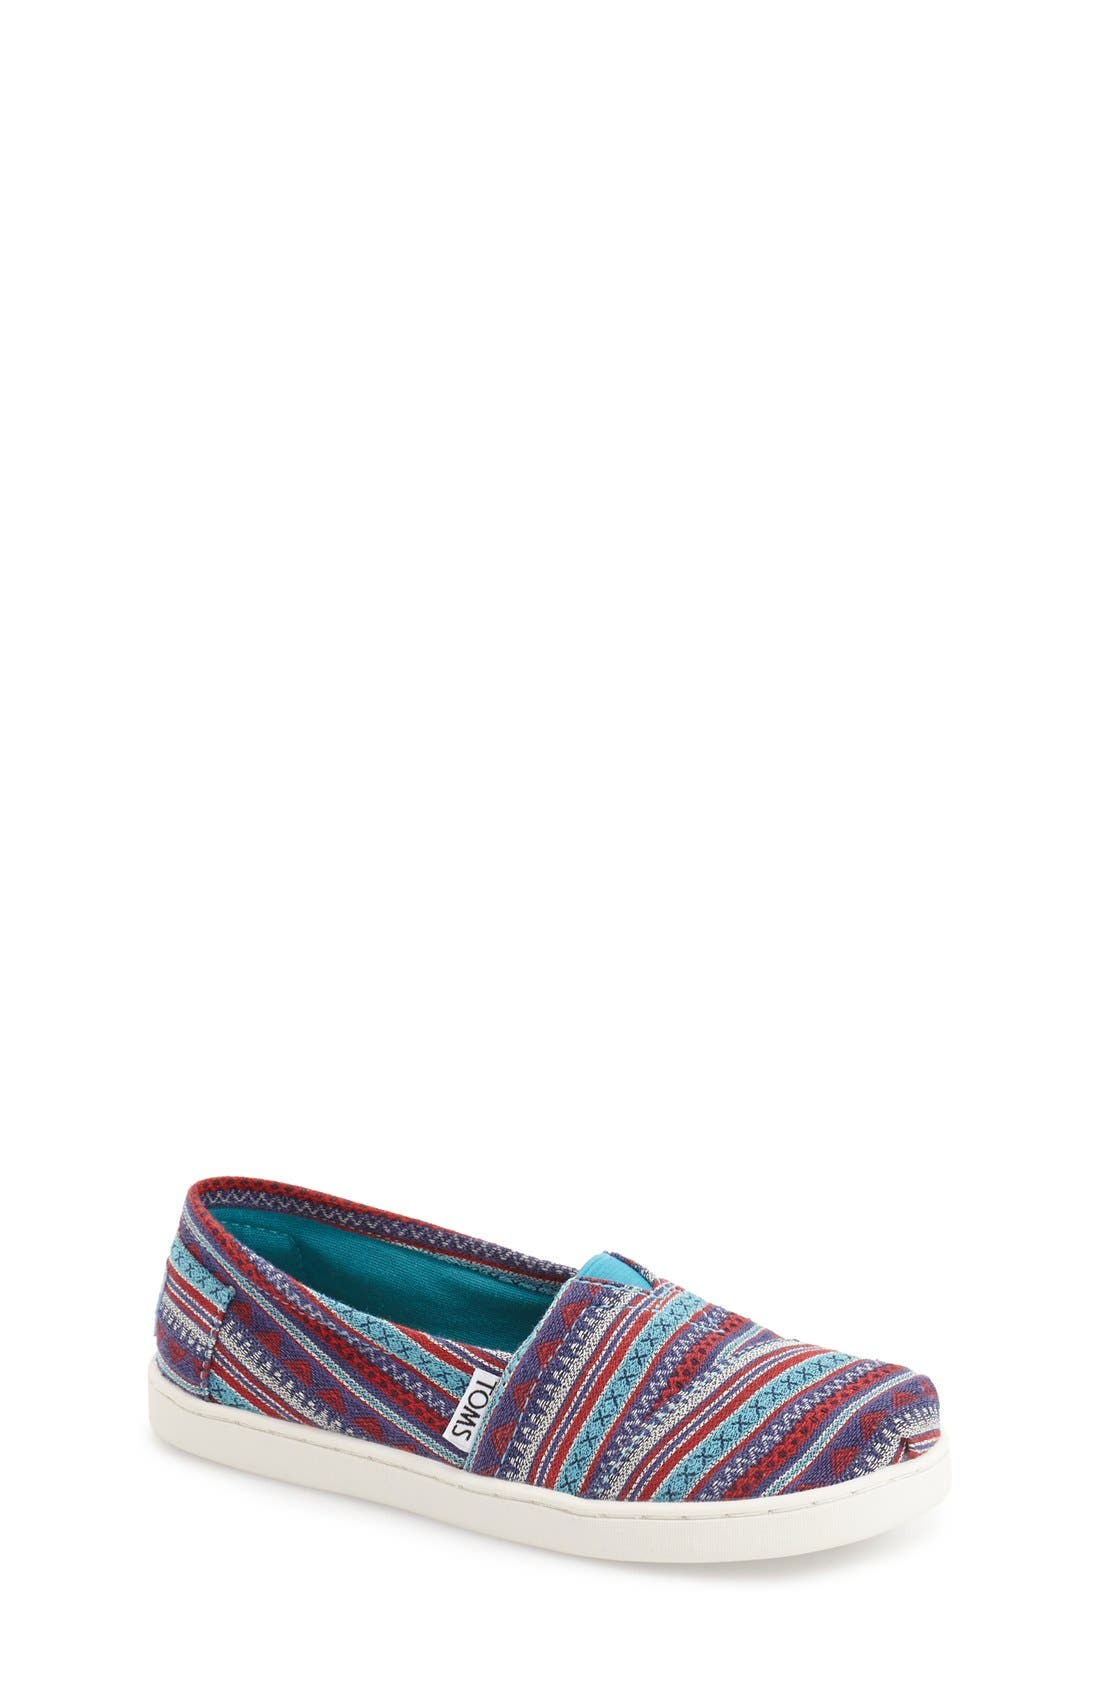 'Classic' Slip-On,                         Main,                         color, 420